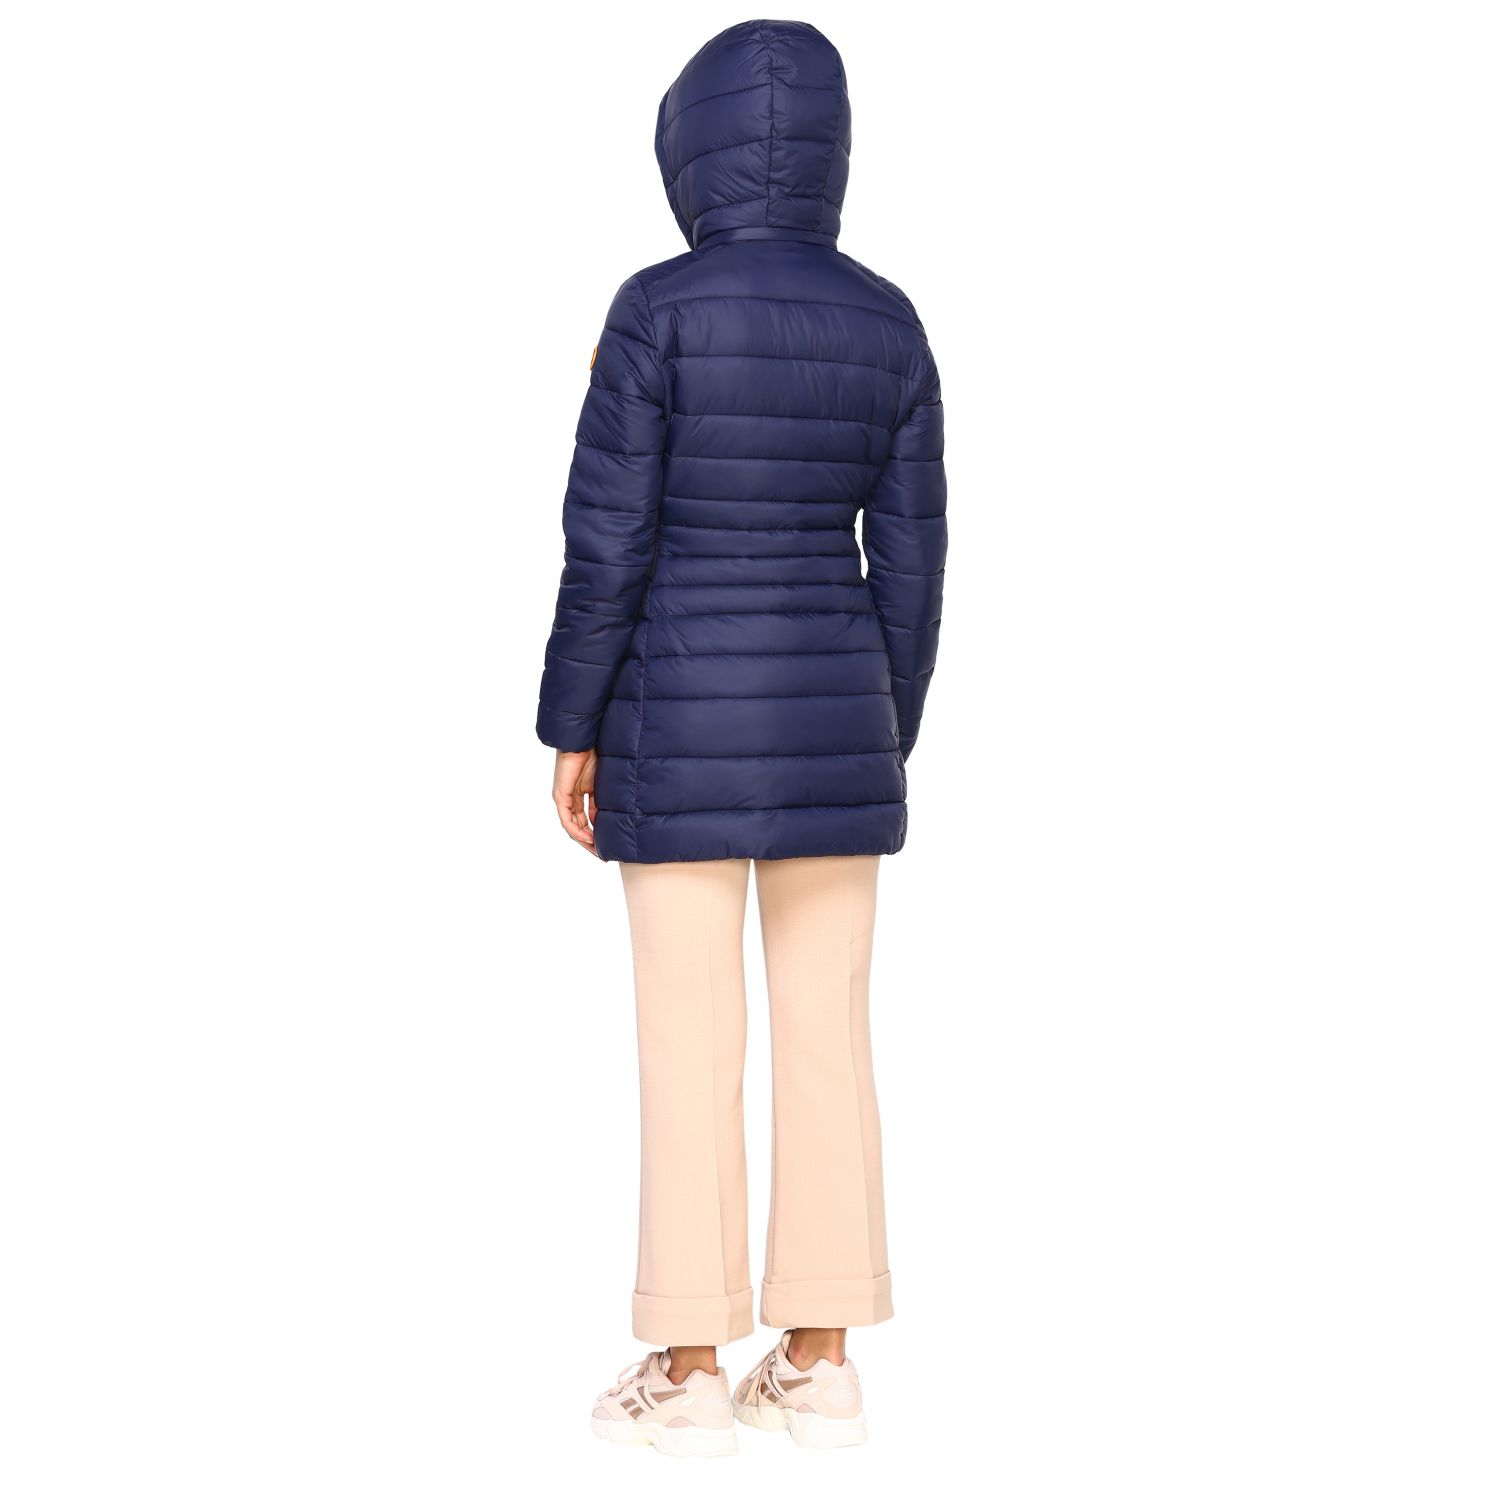 Giacca Save The Duck: Cappotto donna Save The Duck blue navy 3